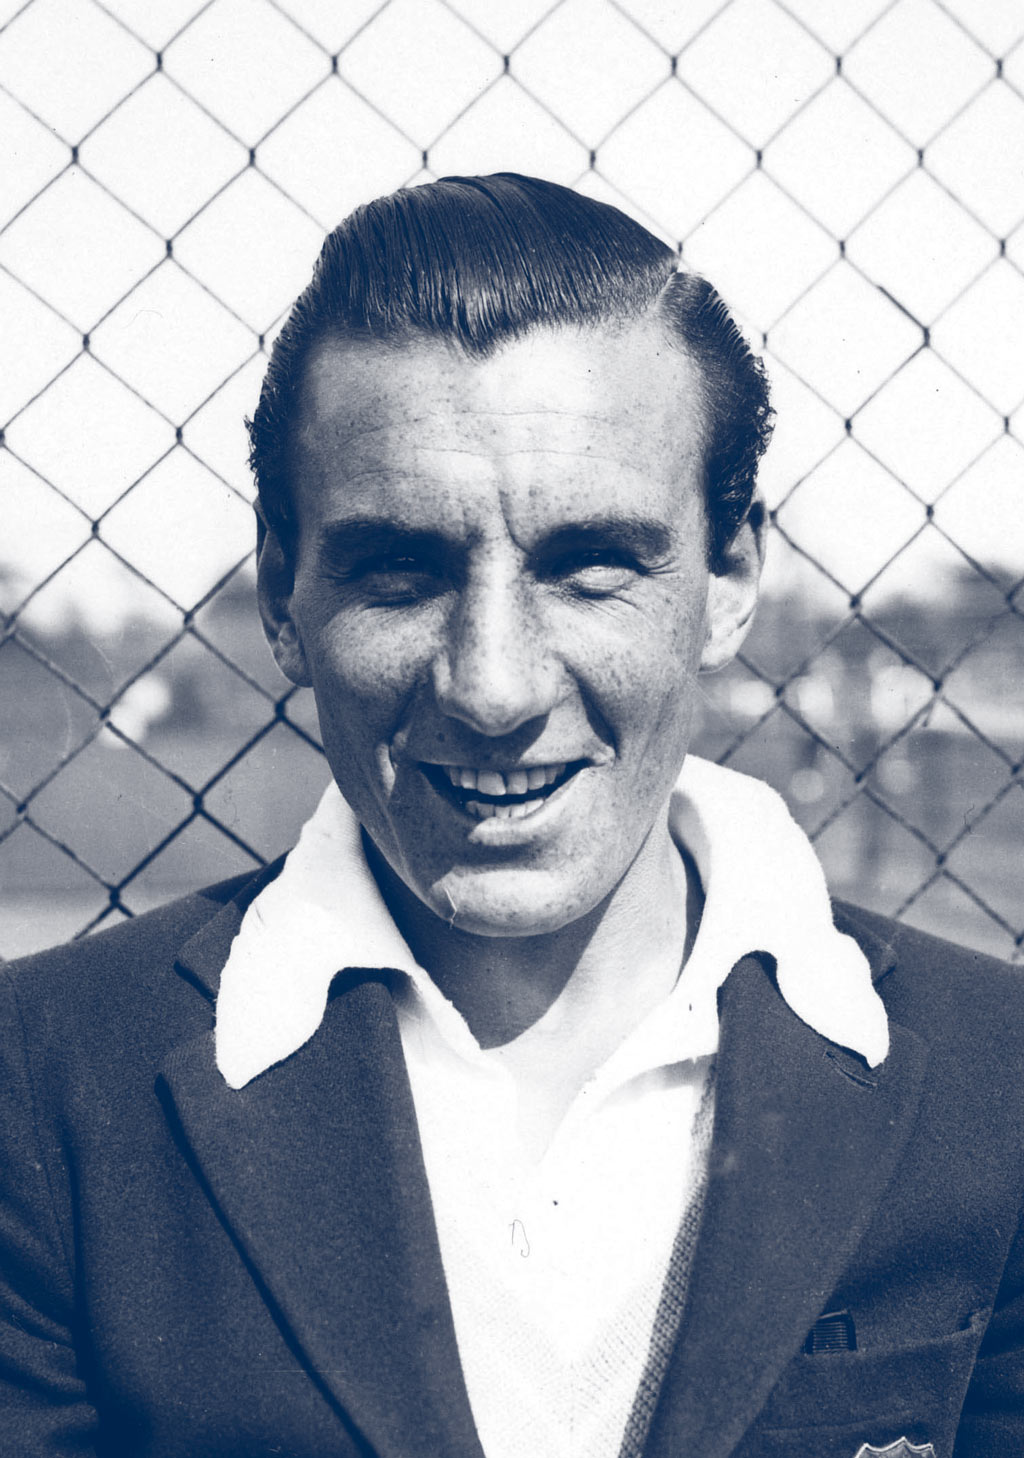 Fred Perry - The best dressed player